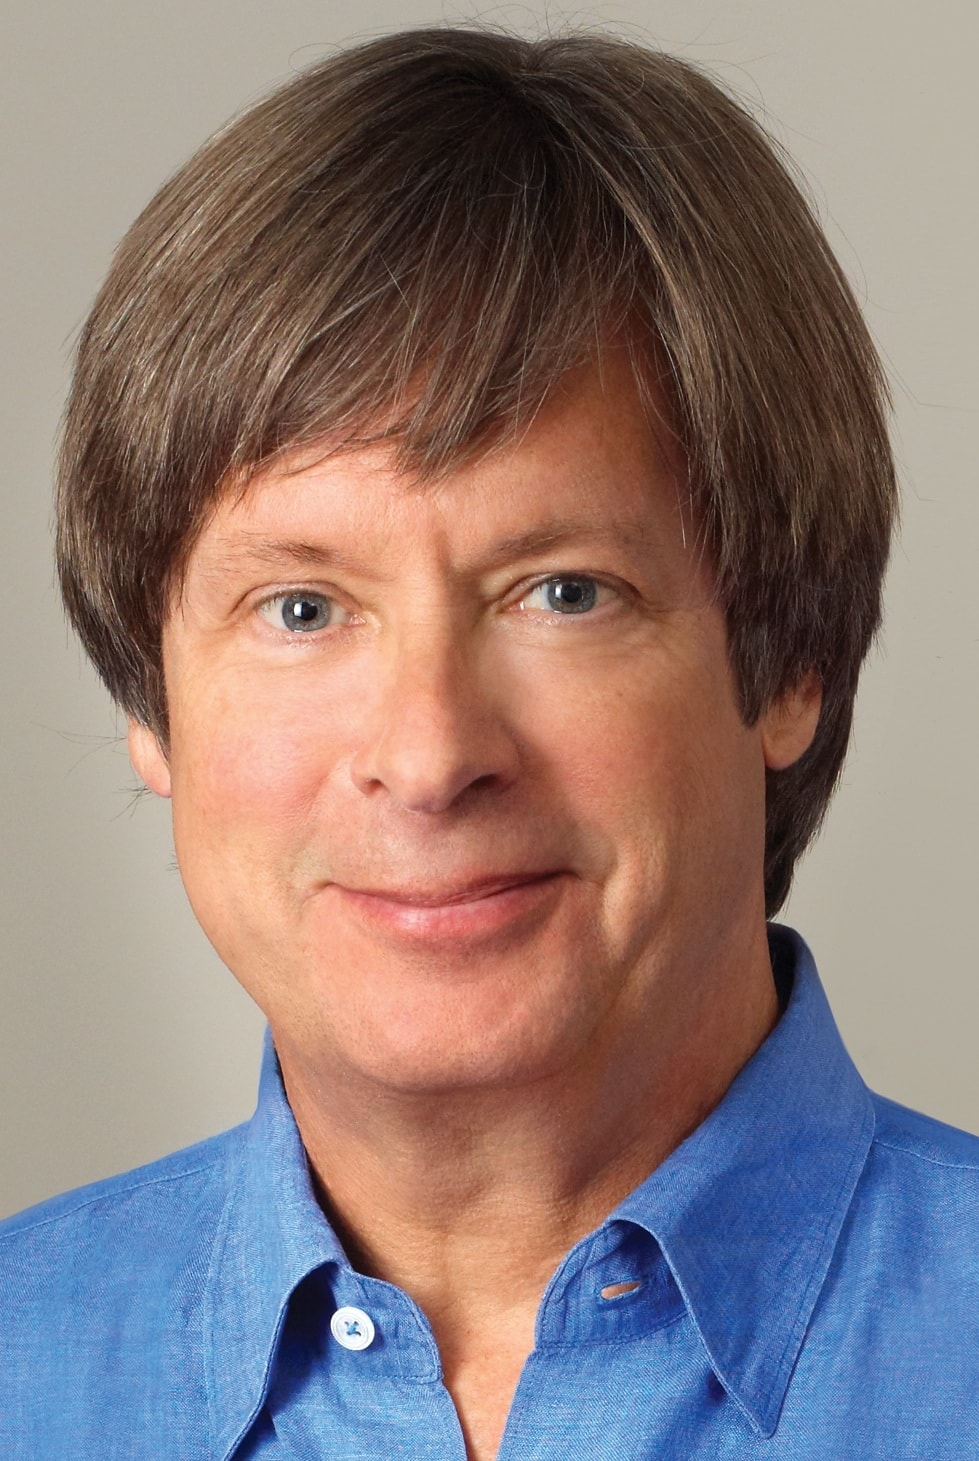 Dave barry biography